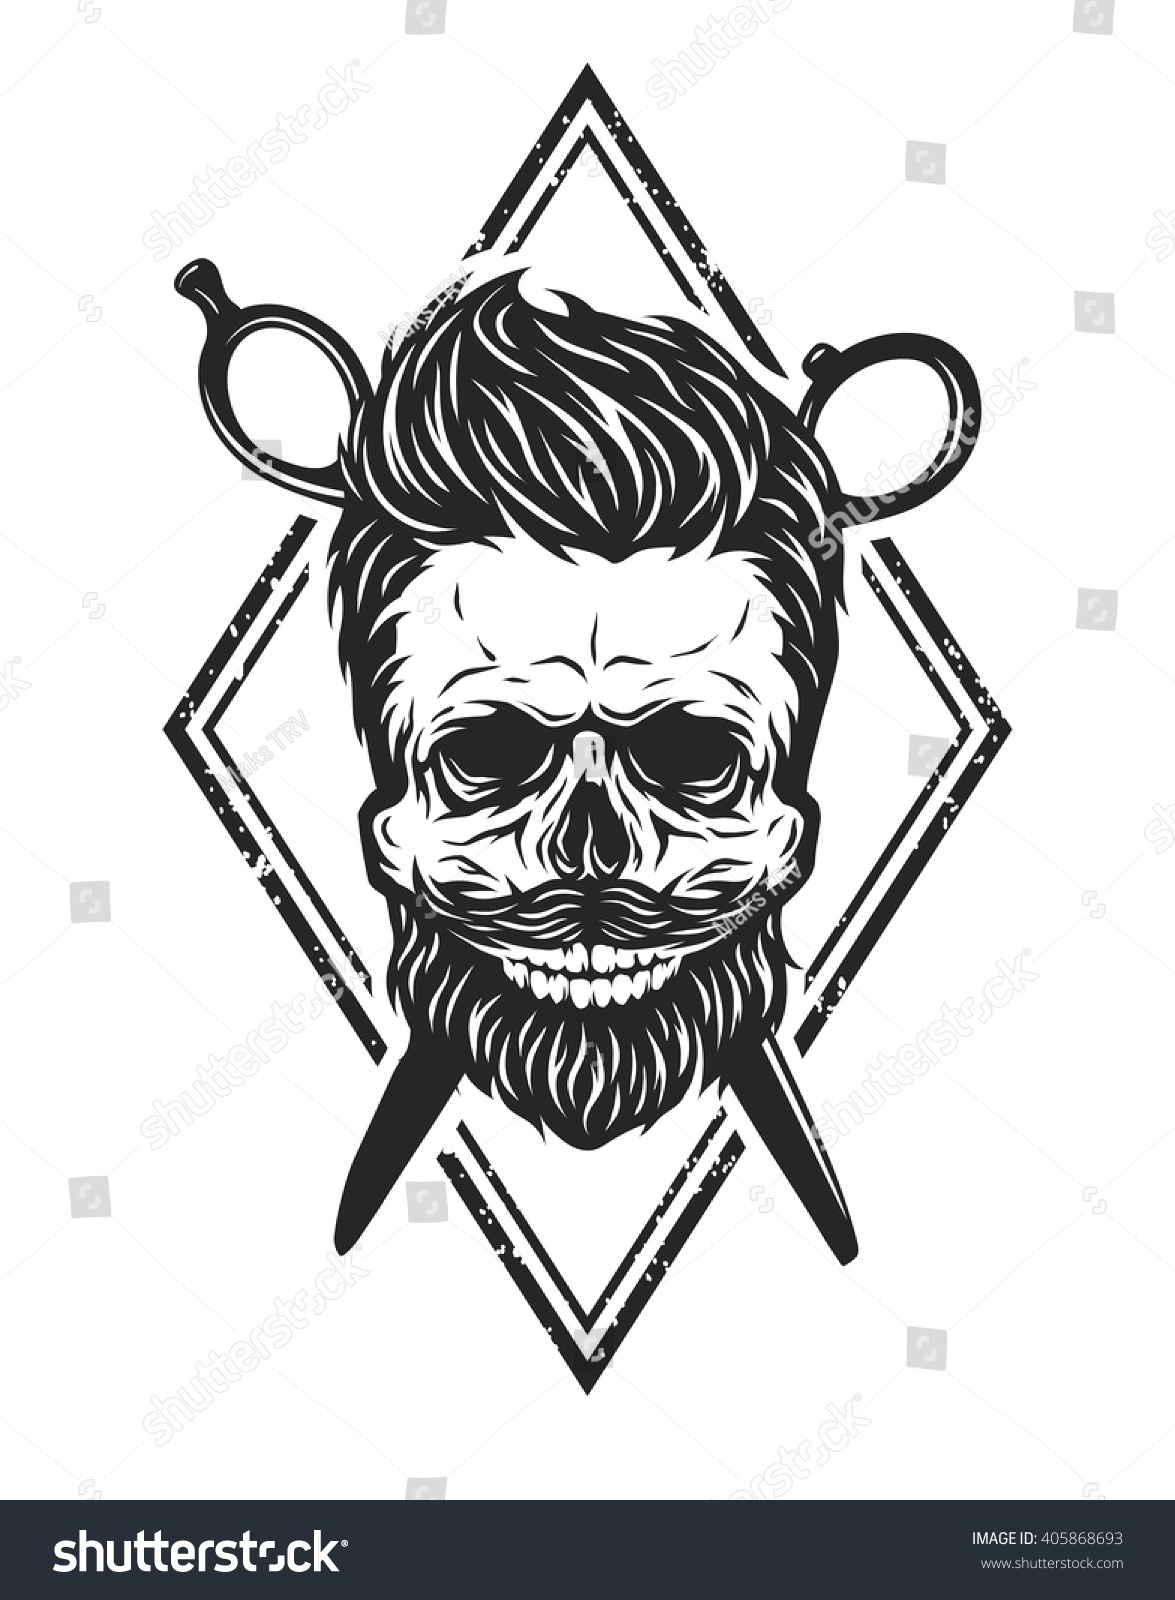 Skull With A Beard And A Stylish Haircut. The Symbol Of ...